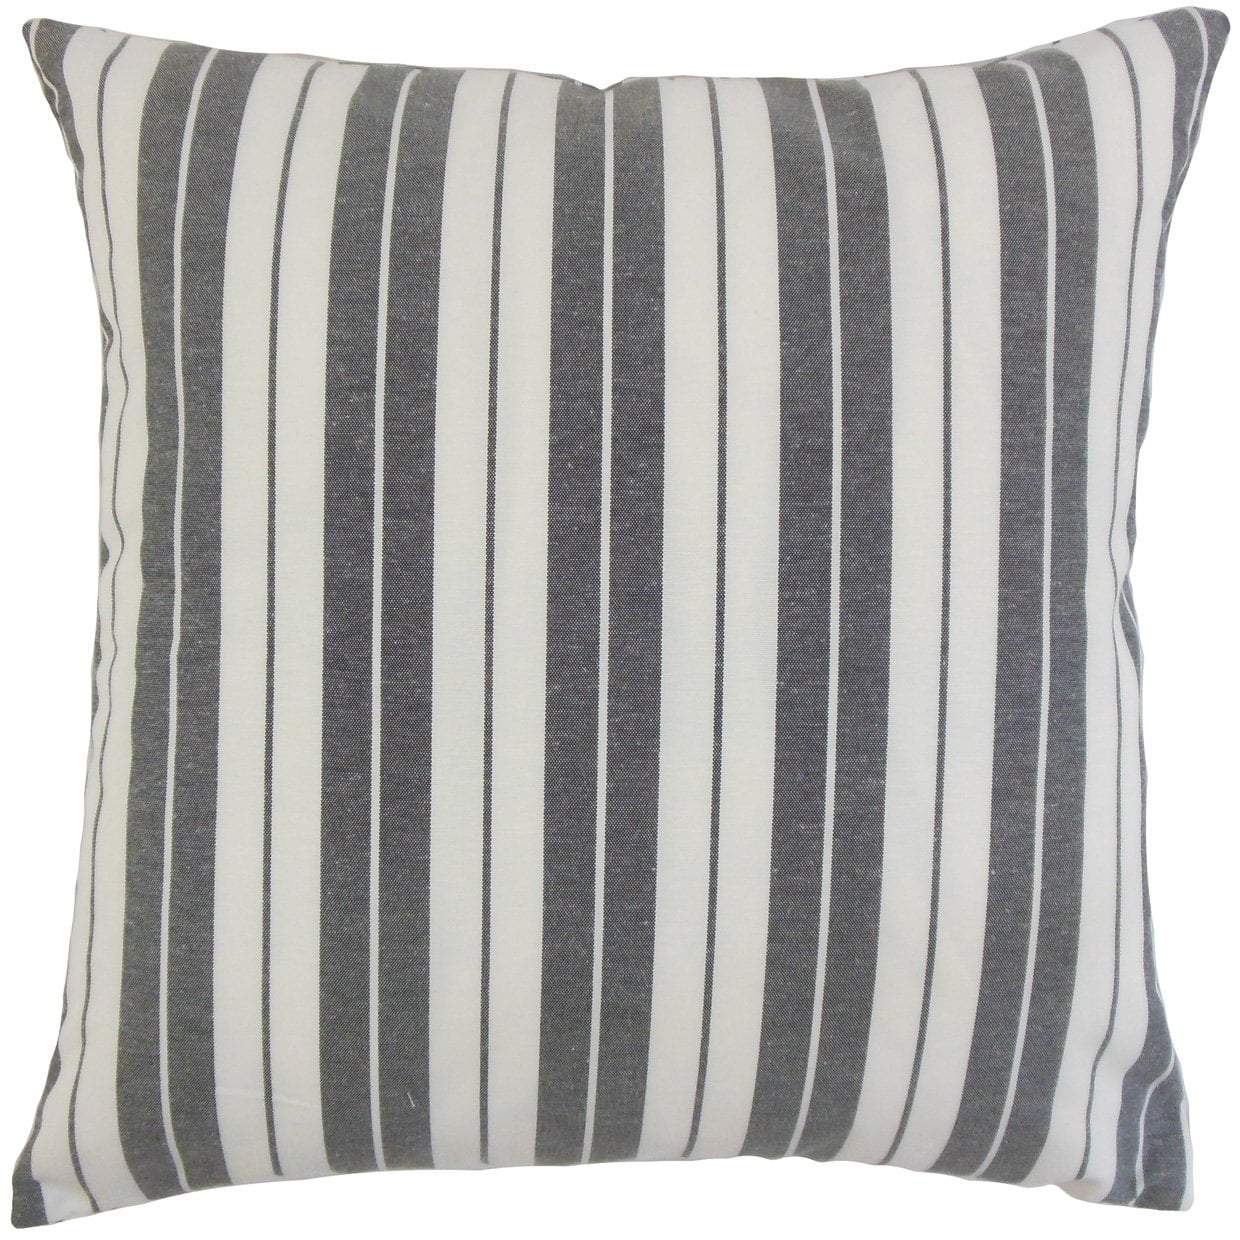 Burks Throw Pillow Cover